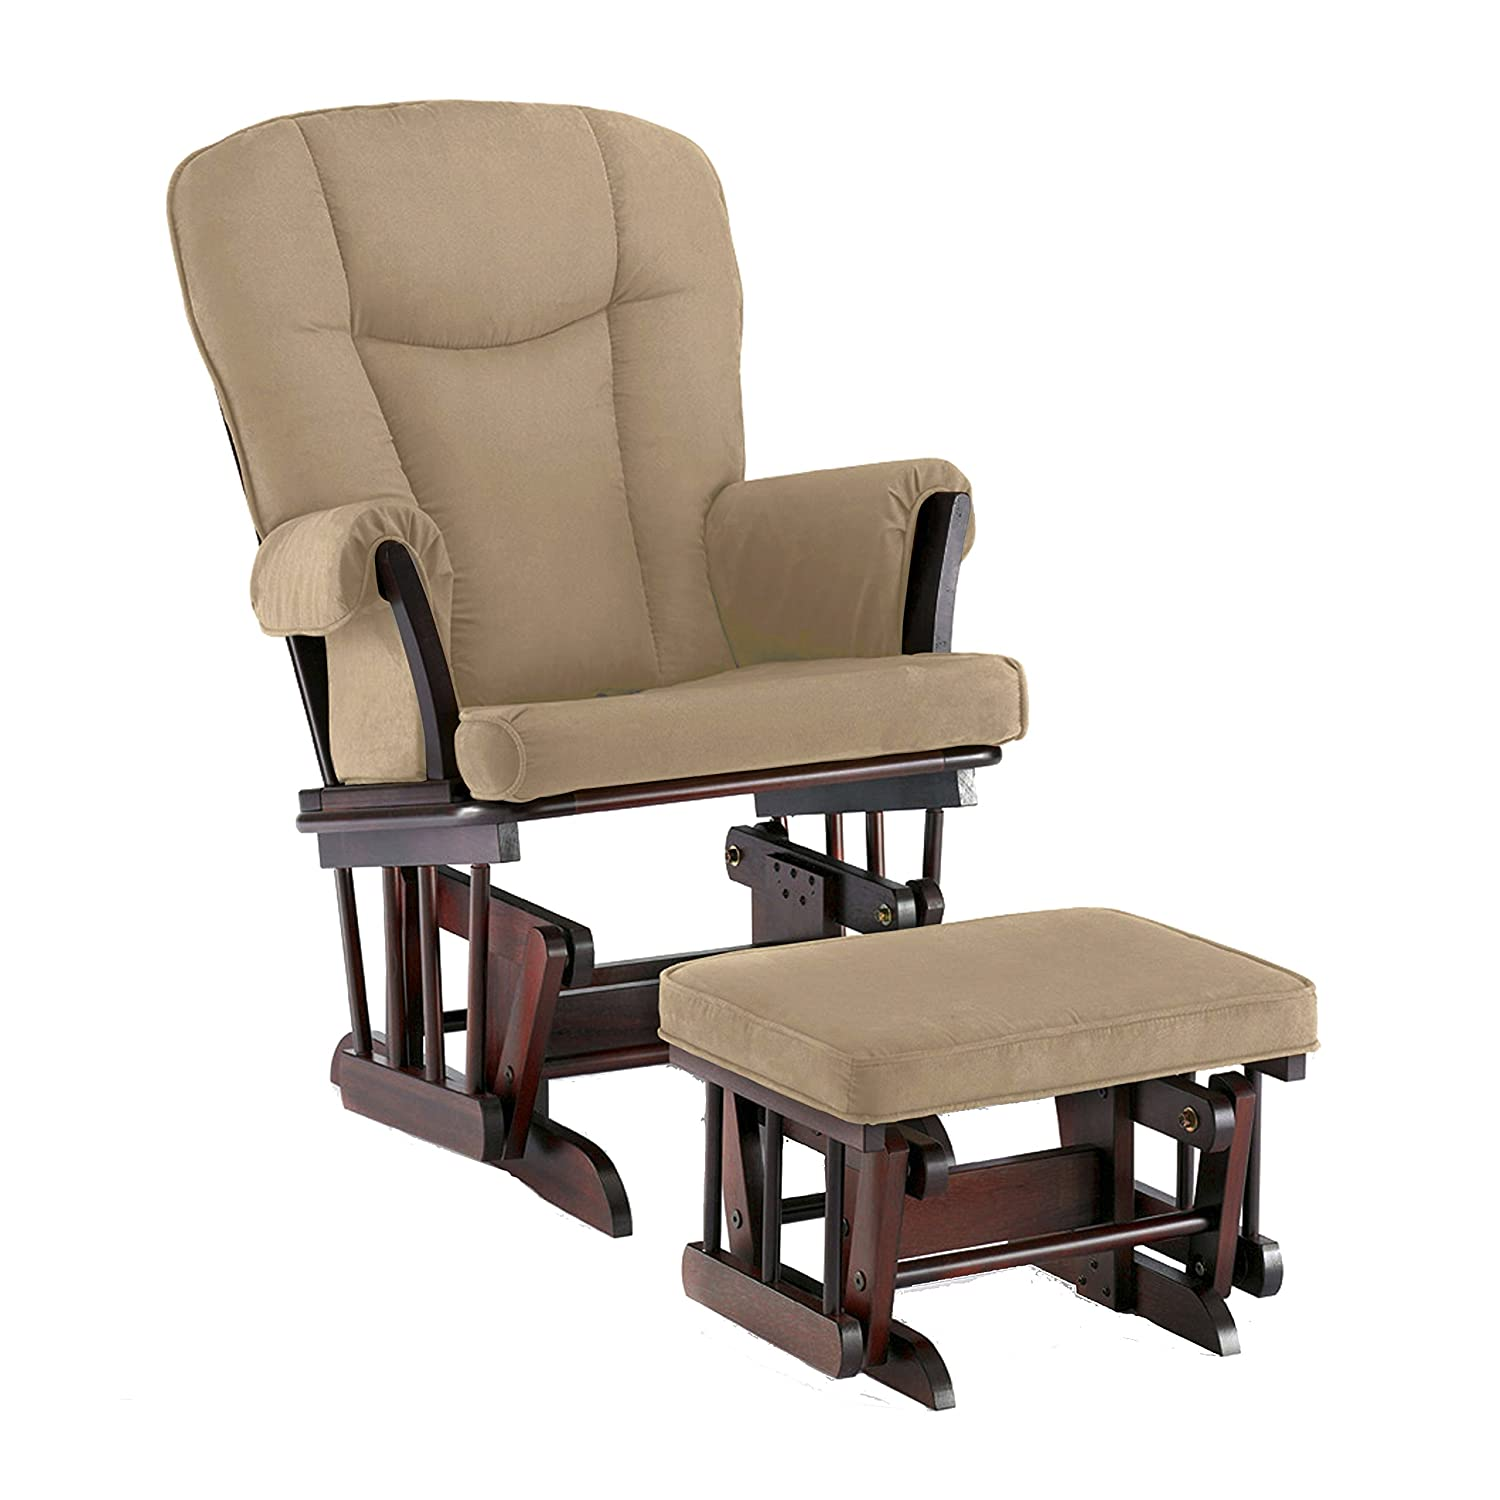 Amazon.com Shermag Stanton Transitional Style Glider Rocker and Ottoman Cherry with Pearl Beige Baby  sc 1 st  Amazon.com & Amazon.com: Shermag Stanton Transitional Style Glider Rocker and ... islam-shia.org